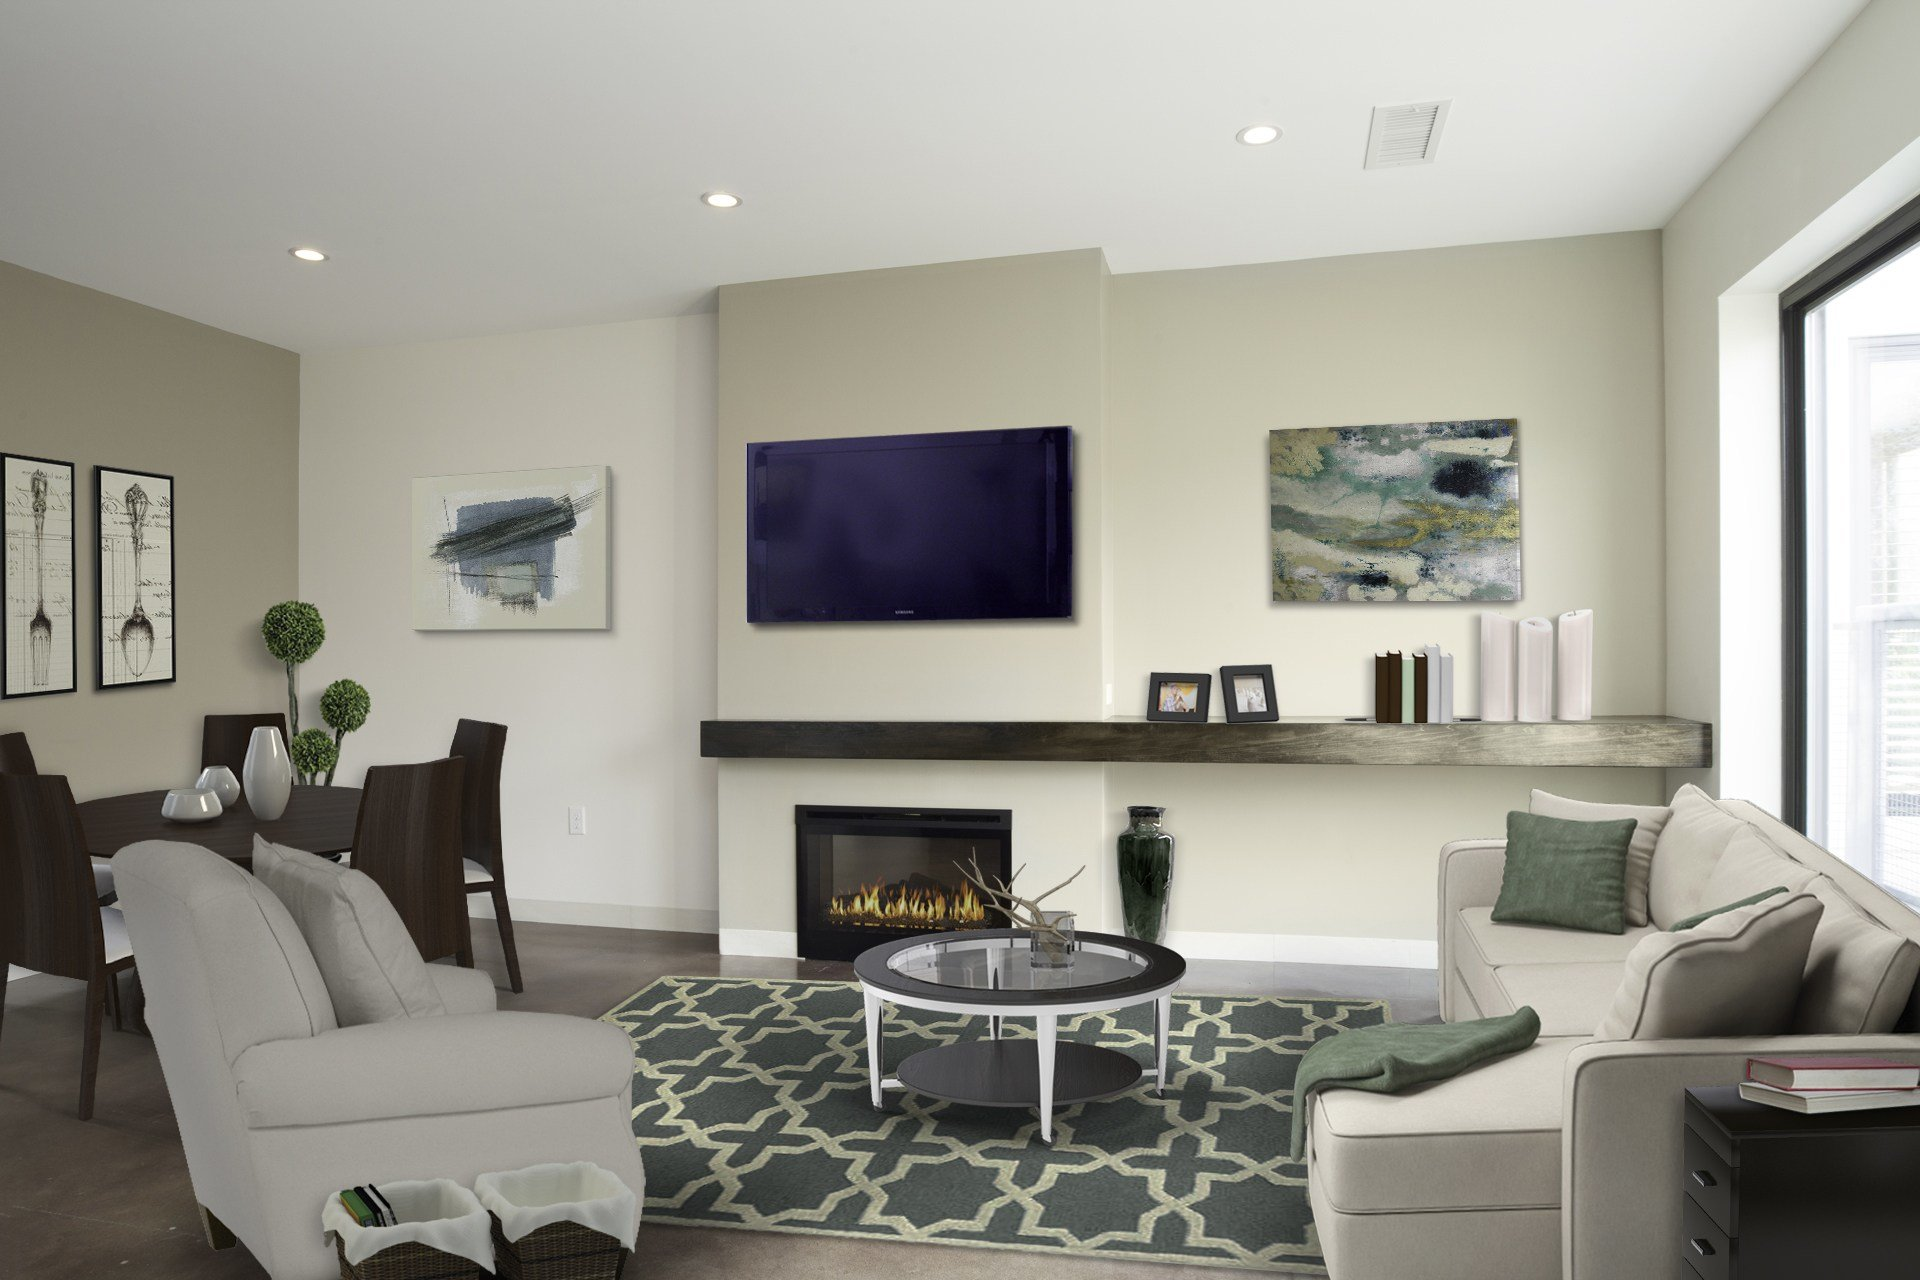 Best Luxury Apartments For Rent In Quincy Ma Quarry Edge 445 With Pictures